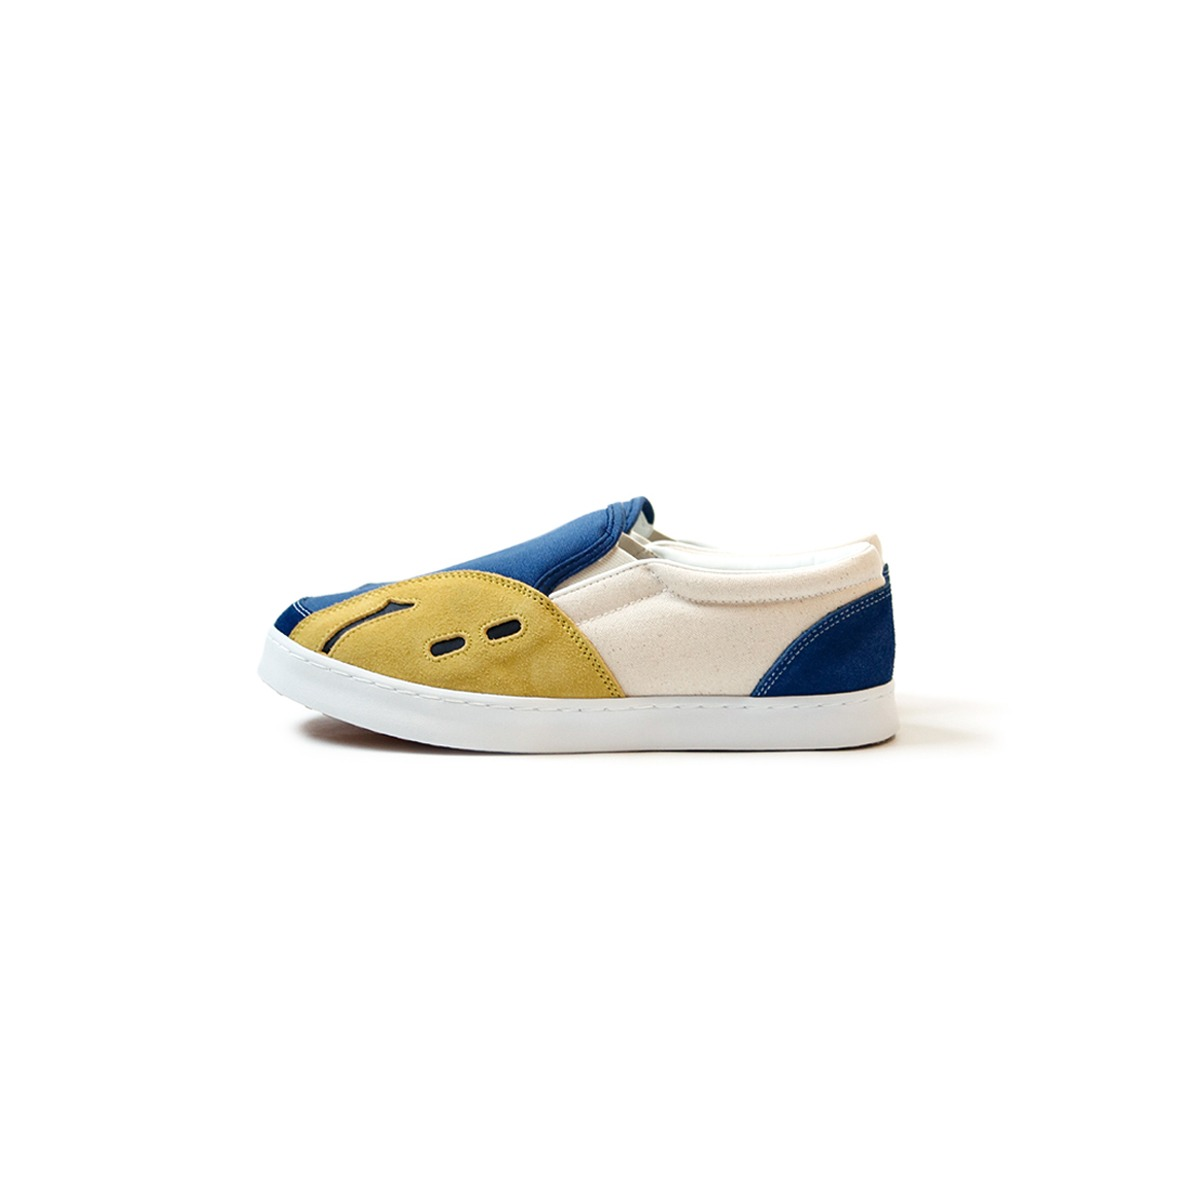 [KAPITAL] RAIN SMILE SLOP-ON SHOES 'ECRU x BLUE'